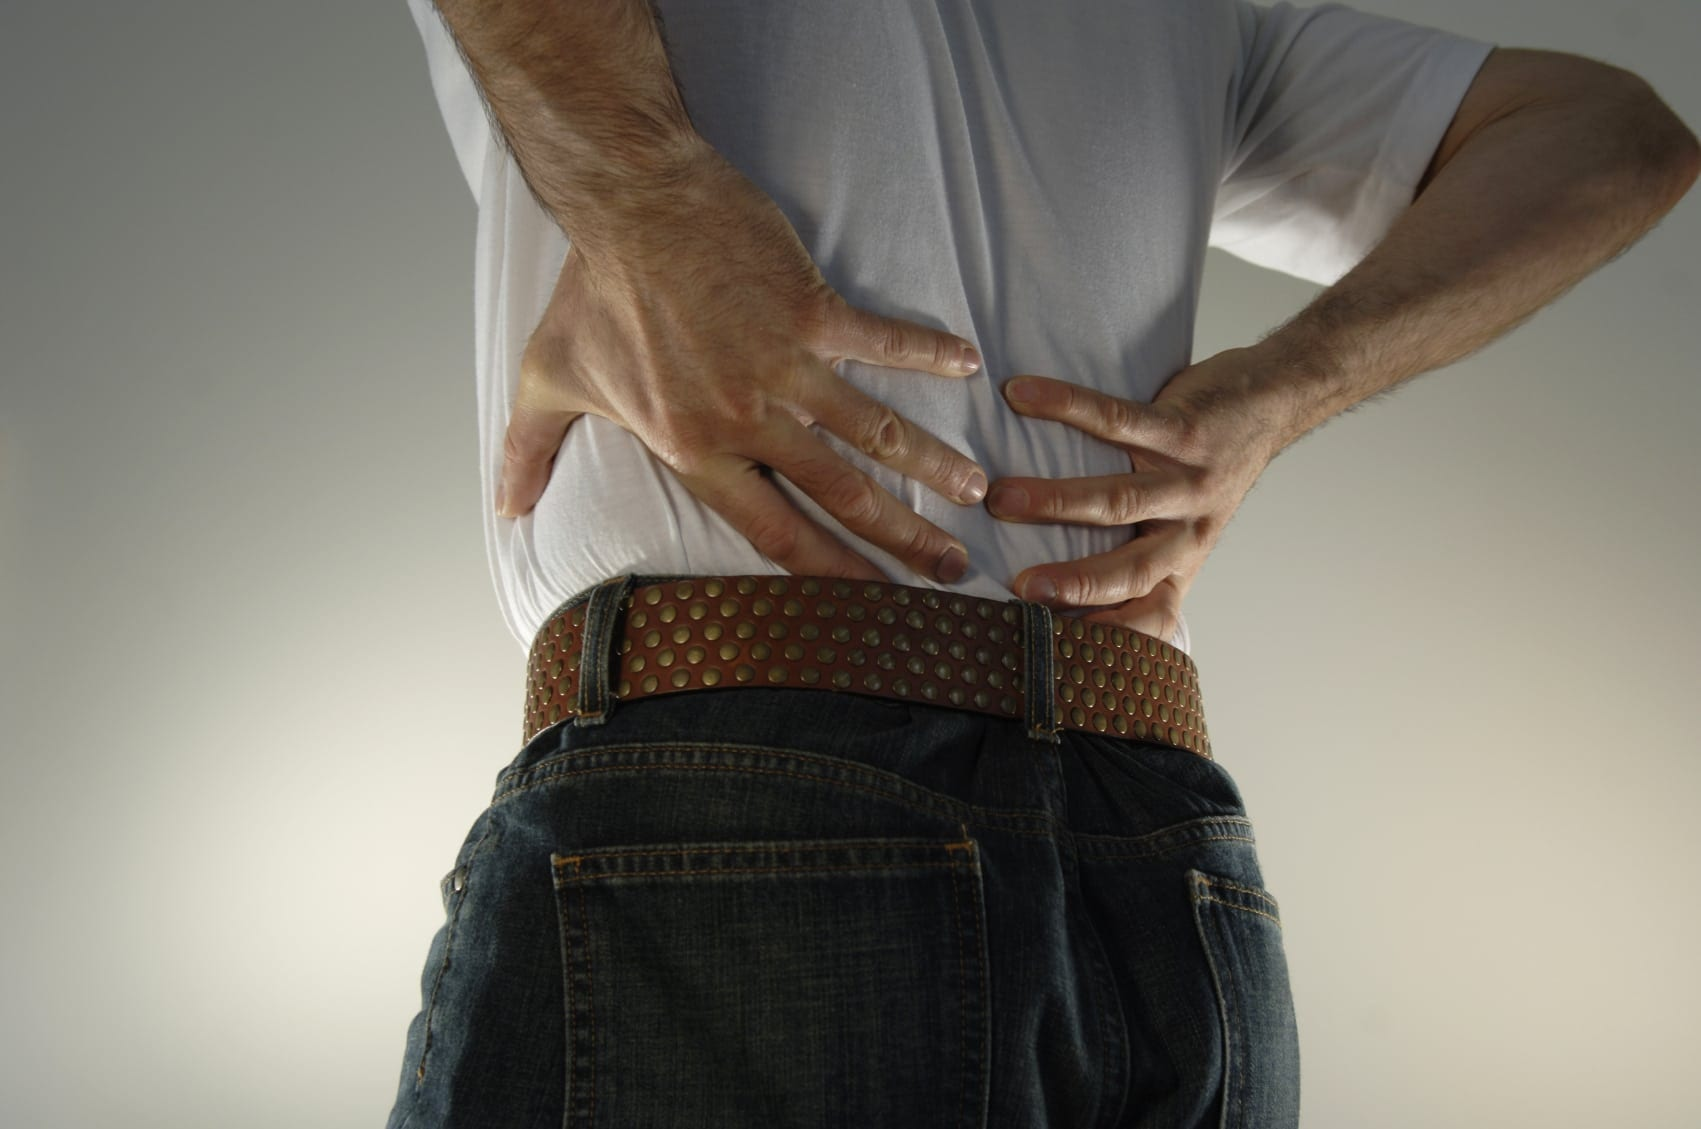 Man Experiencing Lower Back Pain Stock Photo